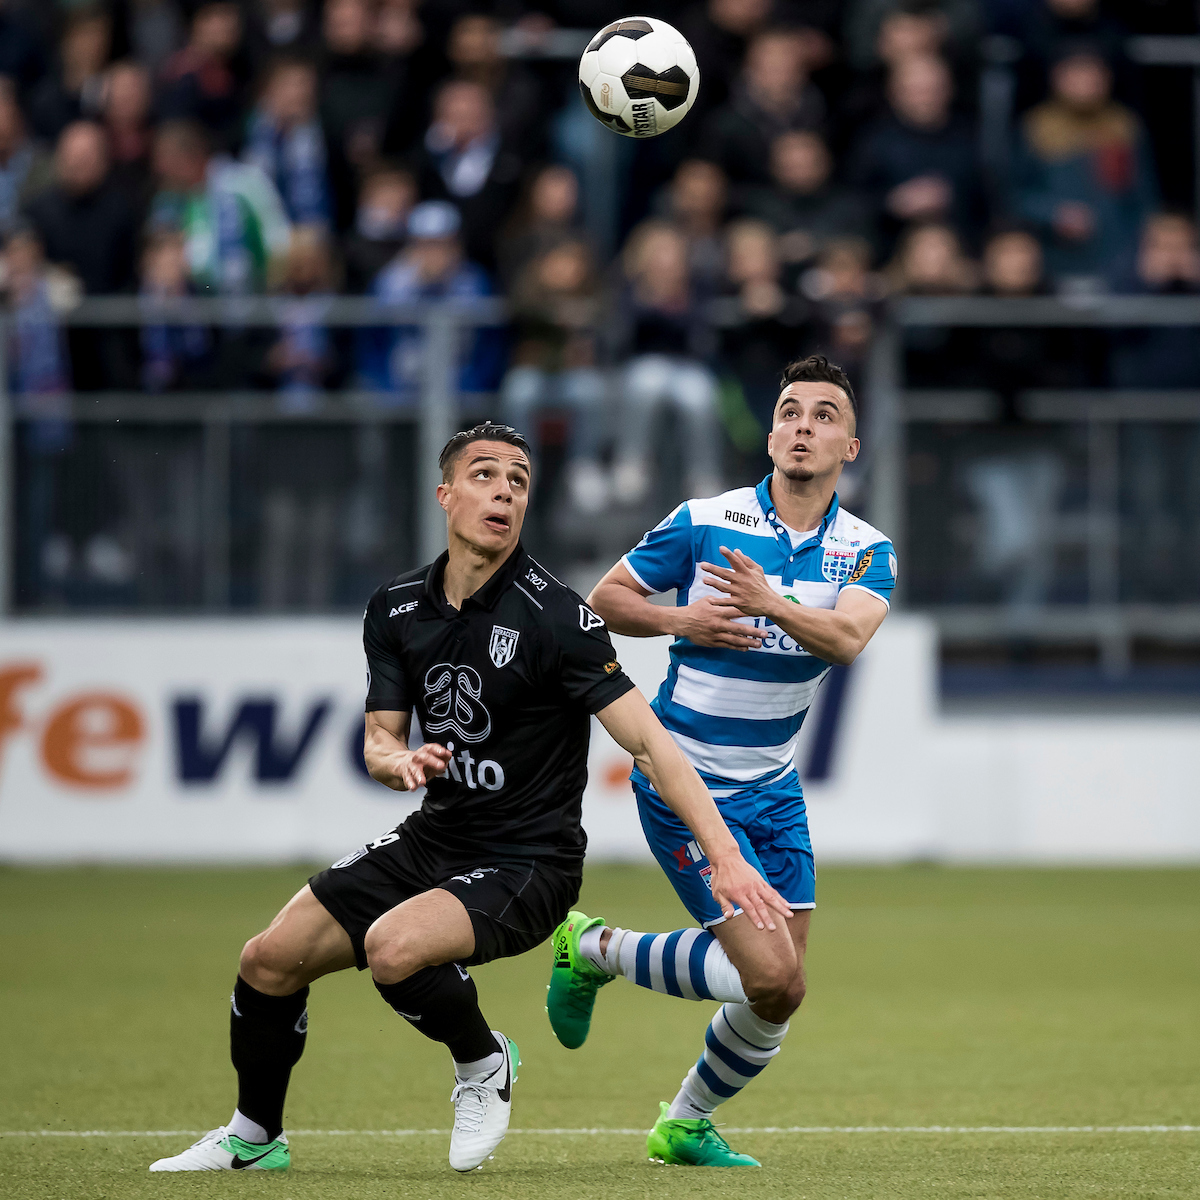 Mustafa Saymak of PEC Zwolle (R), Joey Pelupessy of Heracles Almelo (L) during the Dutch Eredivisie match at MAC?PARK Stadion, Zwolle Picture by Joep Joseph Leenen/Focus Images Ltd +316 5261929 22/04/2017 ***NETHERLANDS OUT***